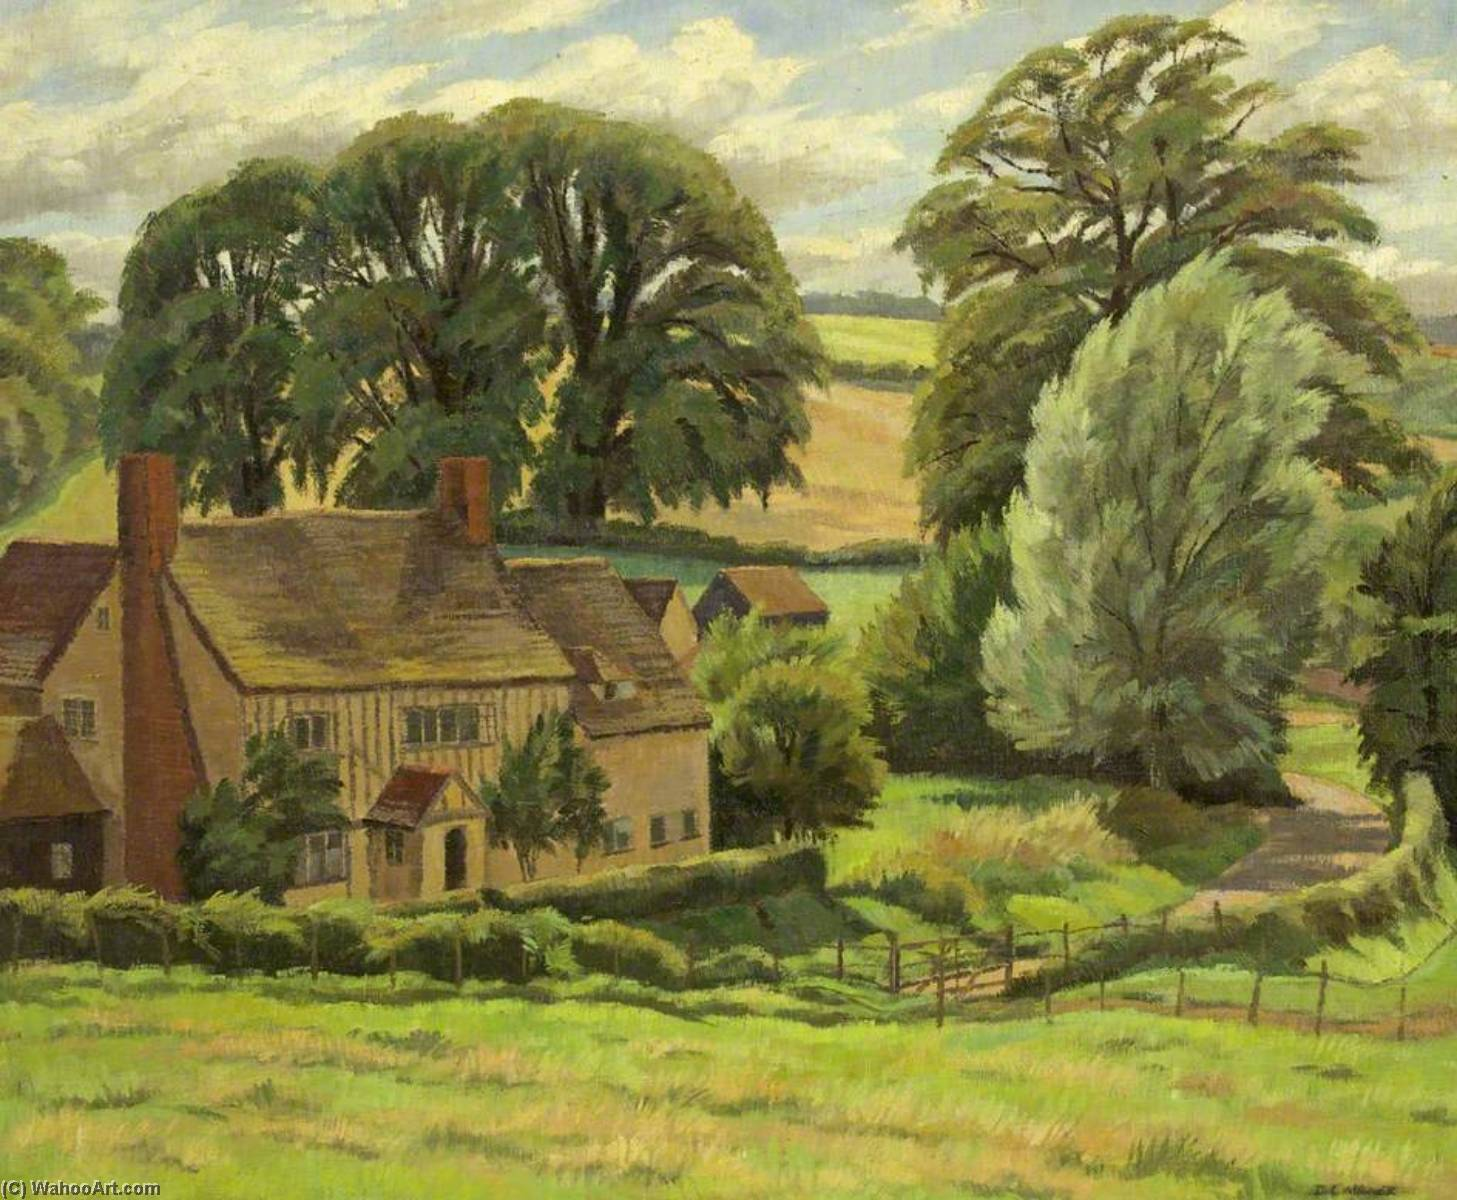 Wikioo.org - The Encyclopedia of Fine Arts - Painting, Artwork by Donald Ewart Milner - A Suffolk Farm